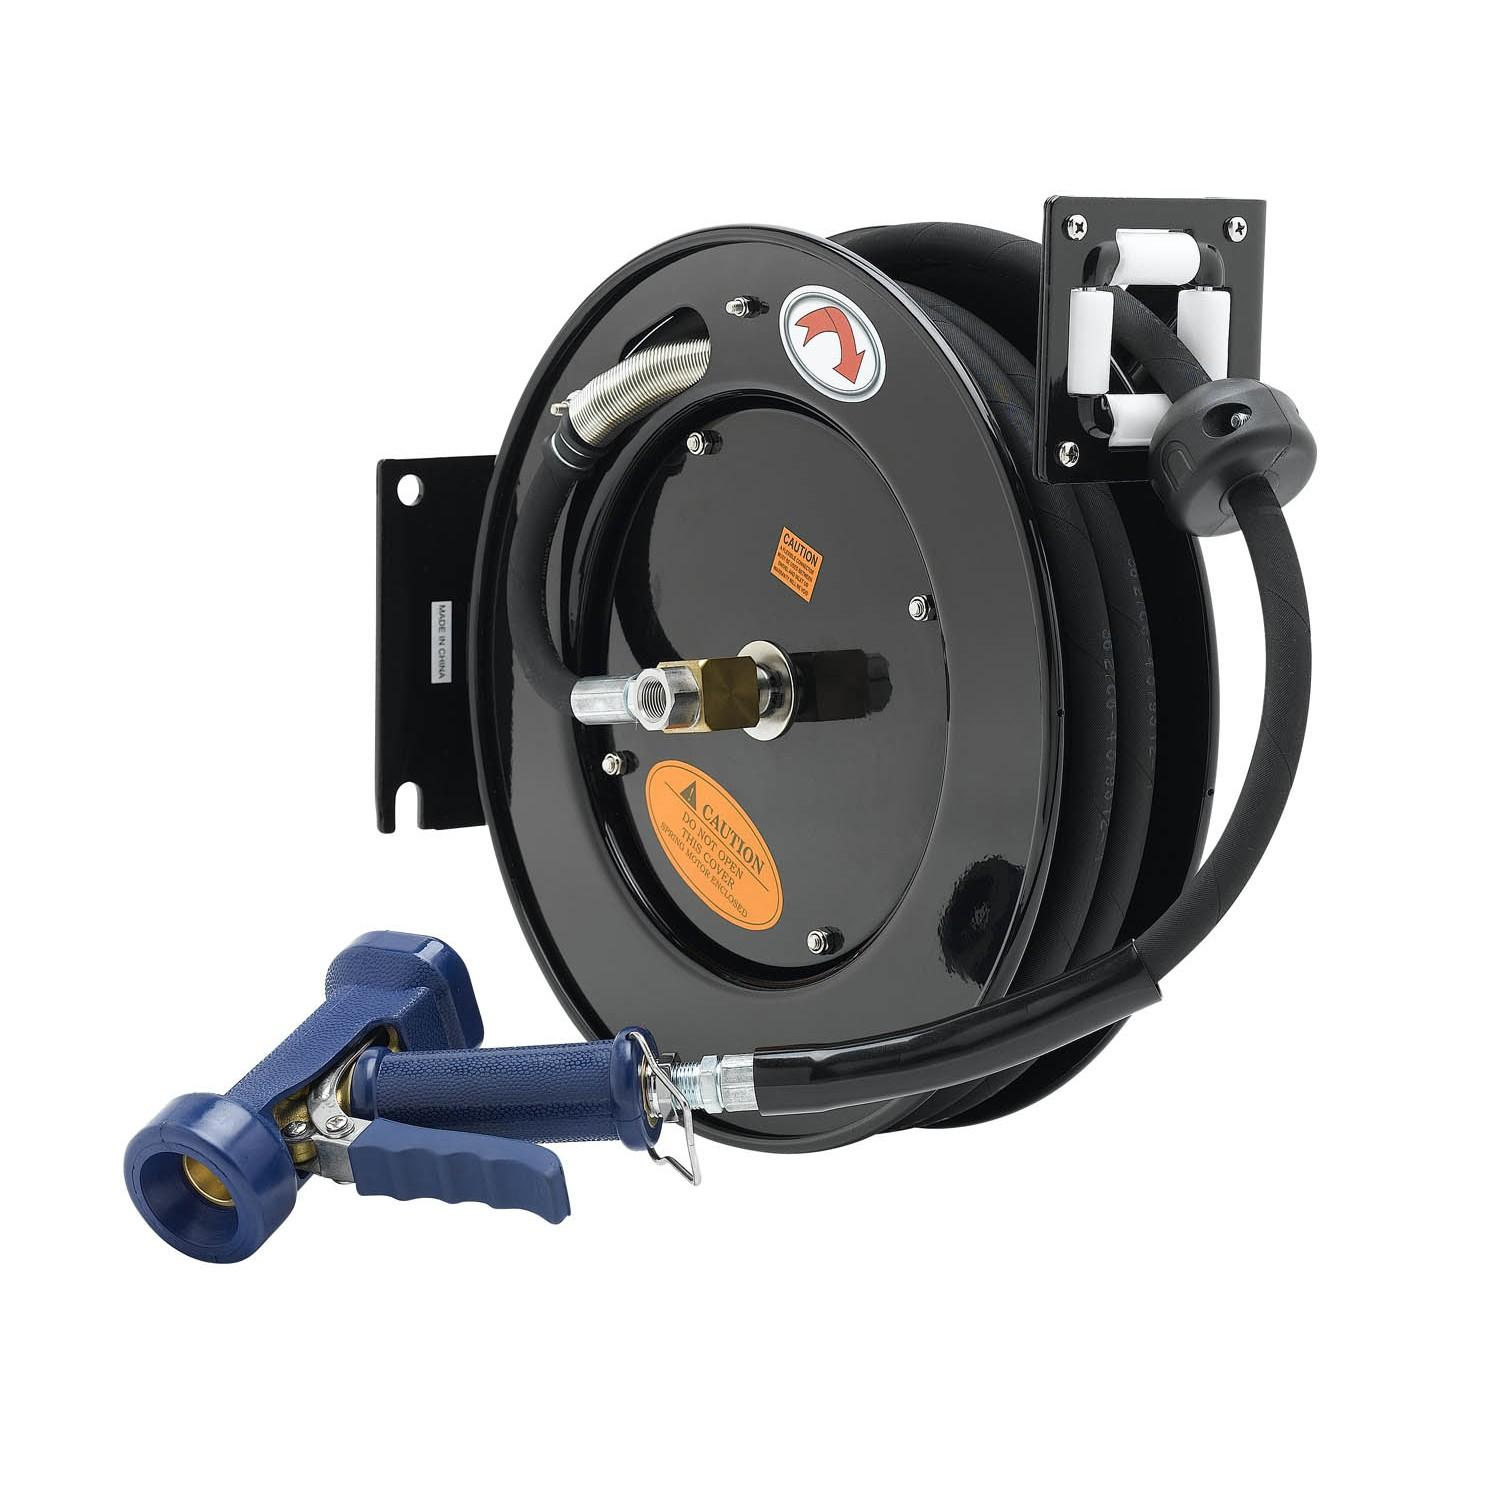 "T&S BRASS HOSE REEL, OPEN, POWDER COATED STEEL, 3/8"" X 50^ ID HOSE, FRONT TRIGGER WATER GUN (BRASS)"